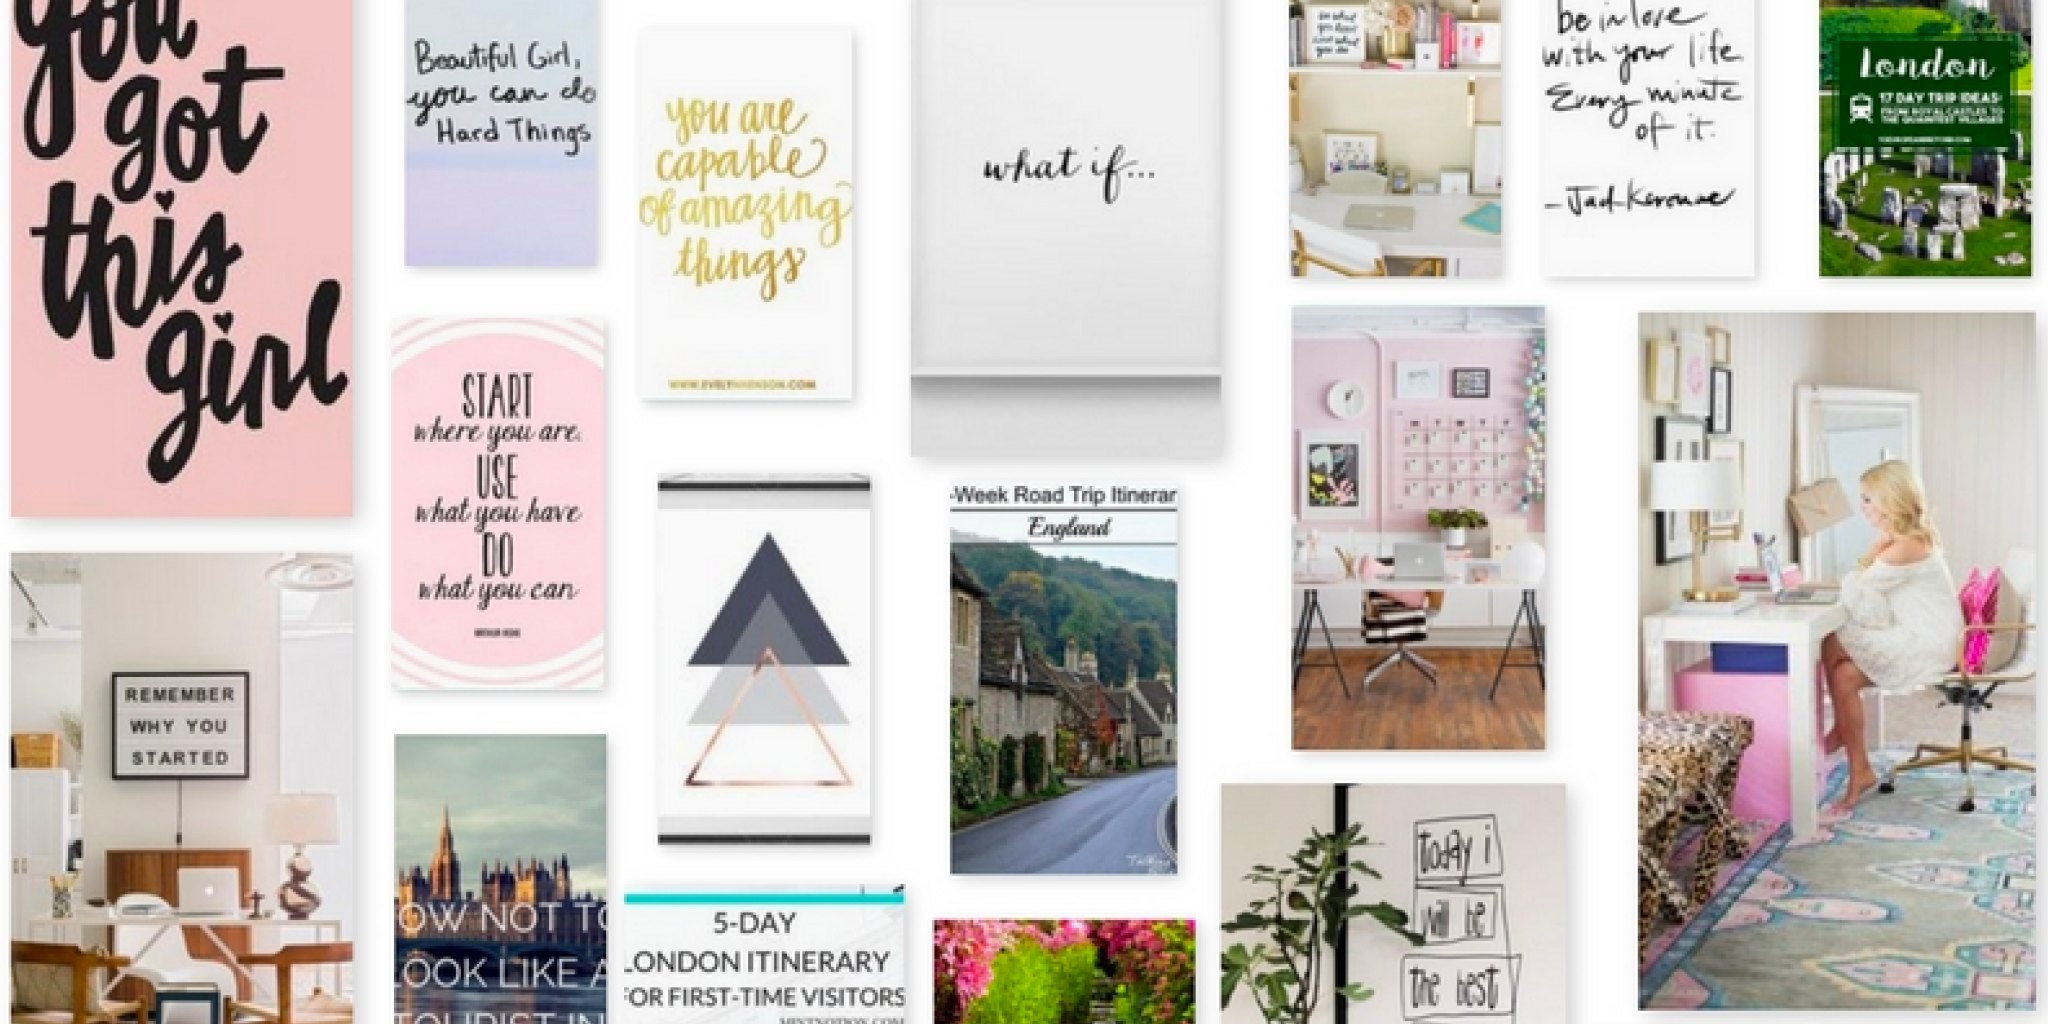 3 Easy Ways to Make a Vision Board